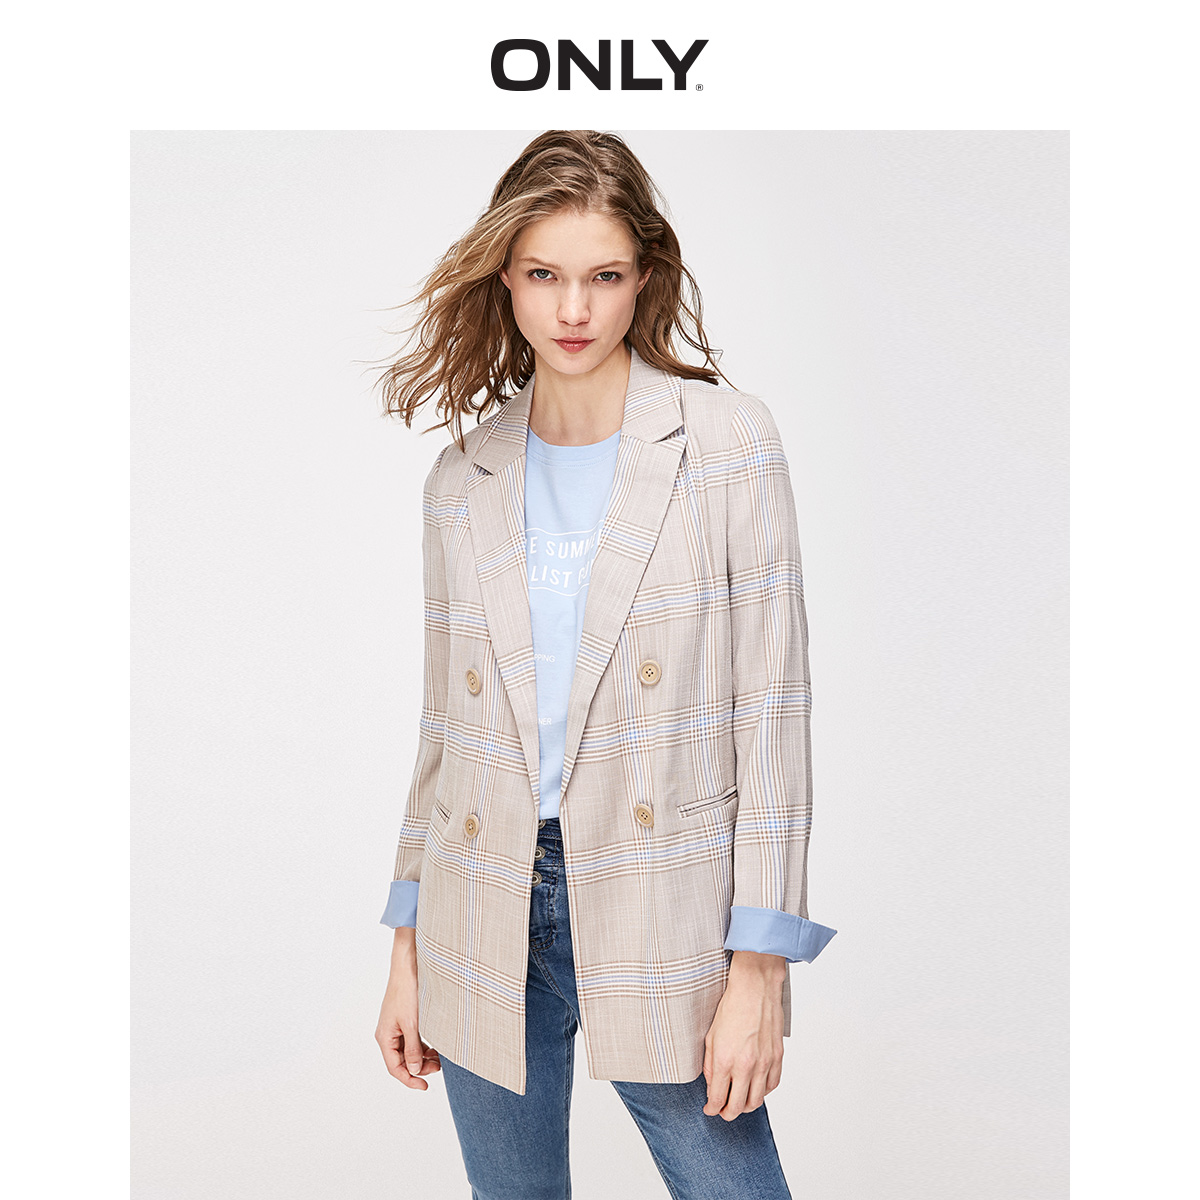 ONLY Women's Loose Fit Thin Double-breasted Blazer   119108540